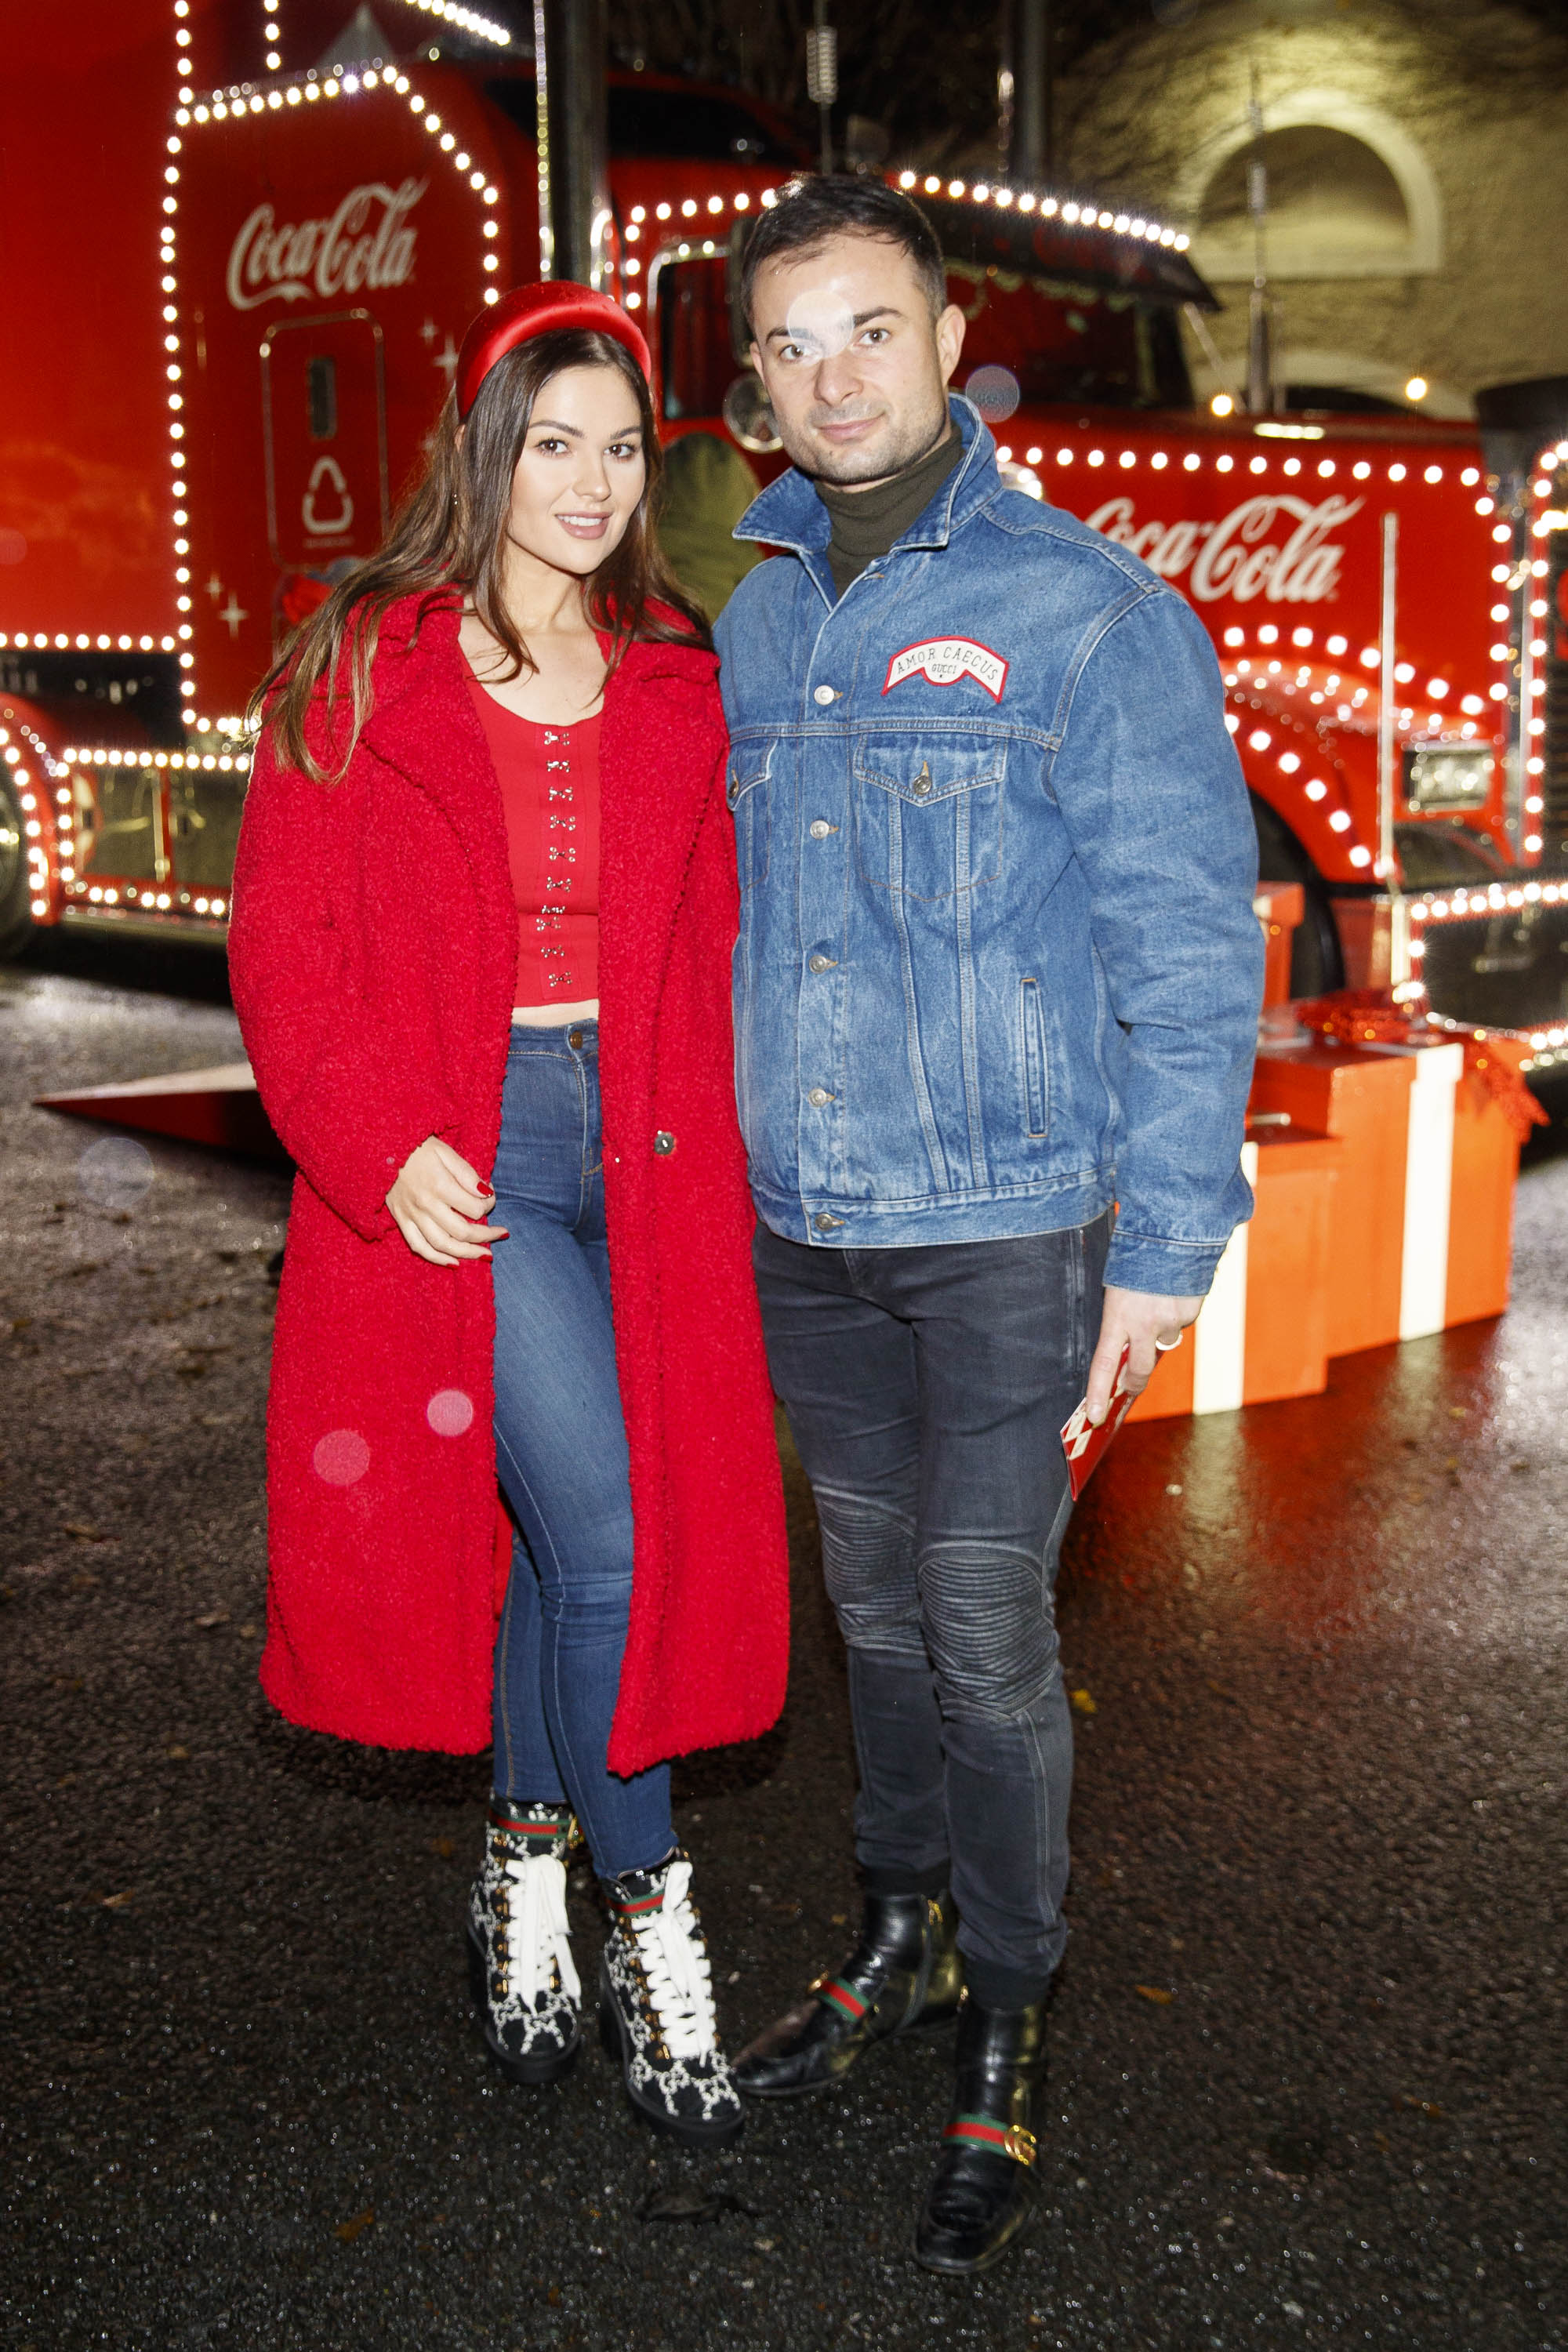 Natalia and Bogdam Petric pictured at Coca-Cola's Christmas Truck Tour launch which took place Monday 25th November at the RDS, Dublin. Photo: Andres Poveda